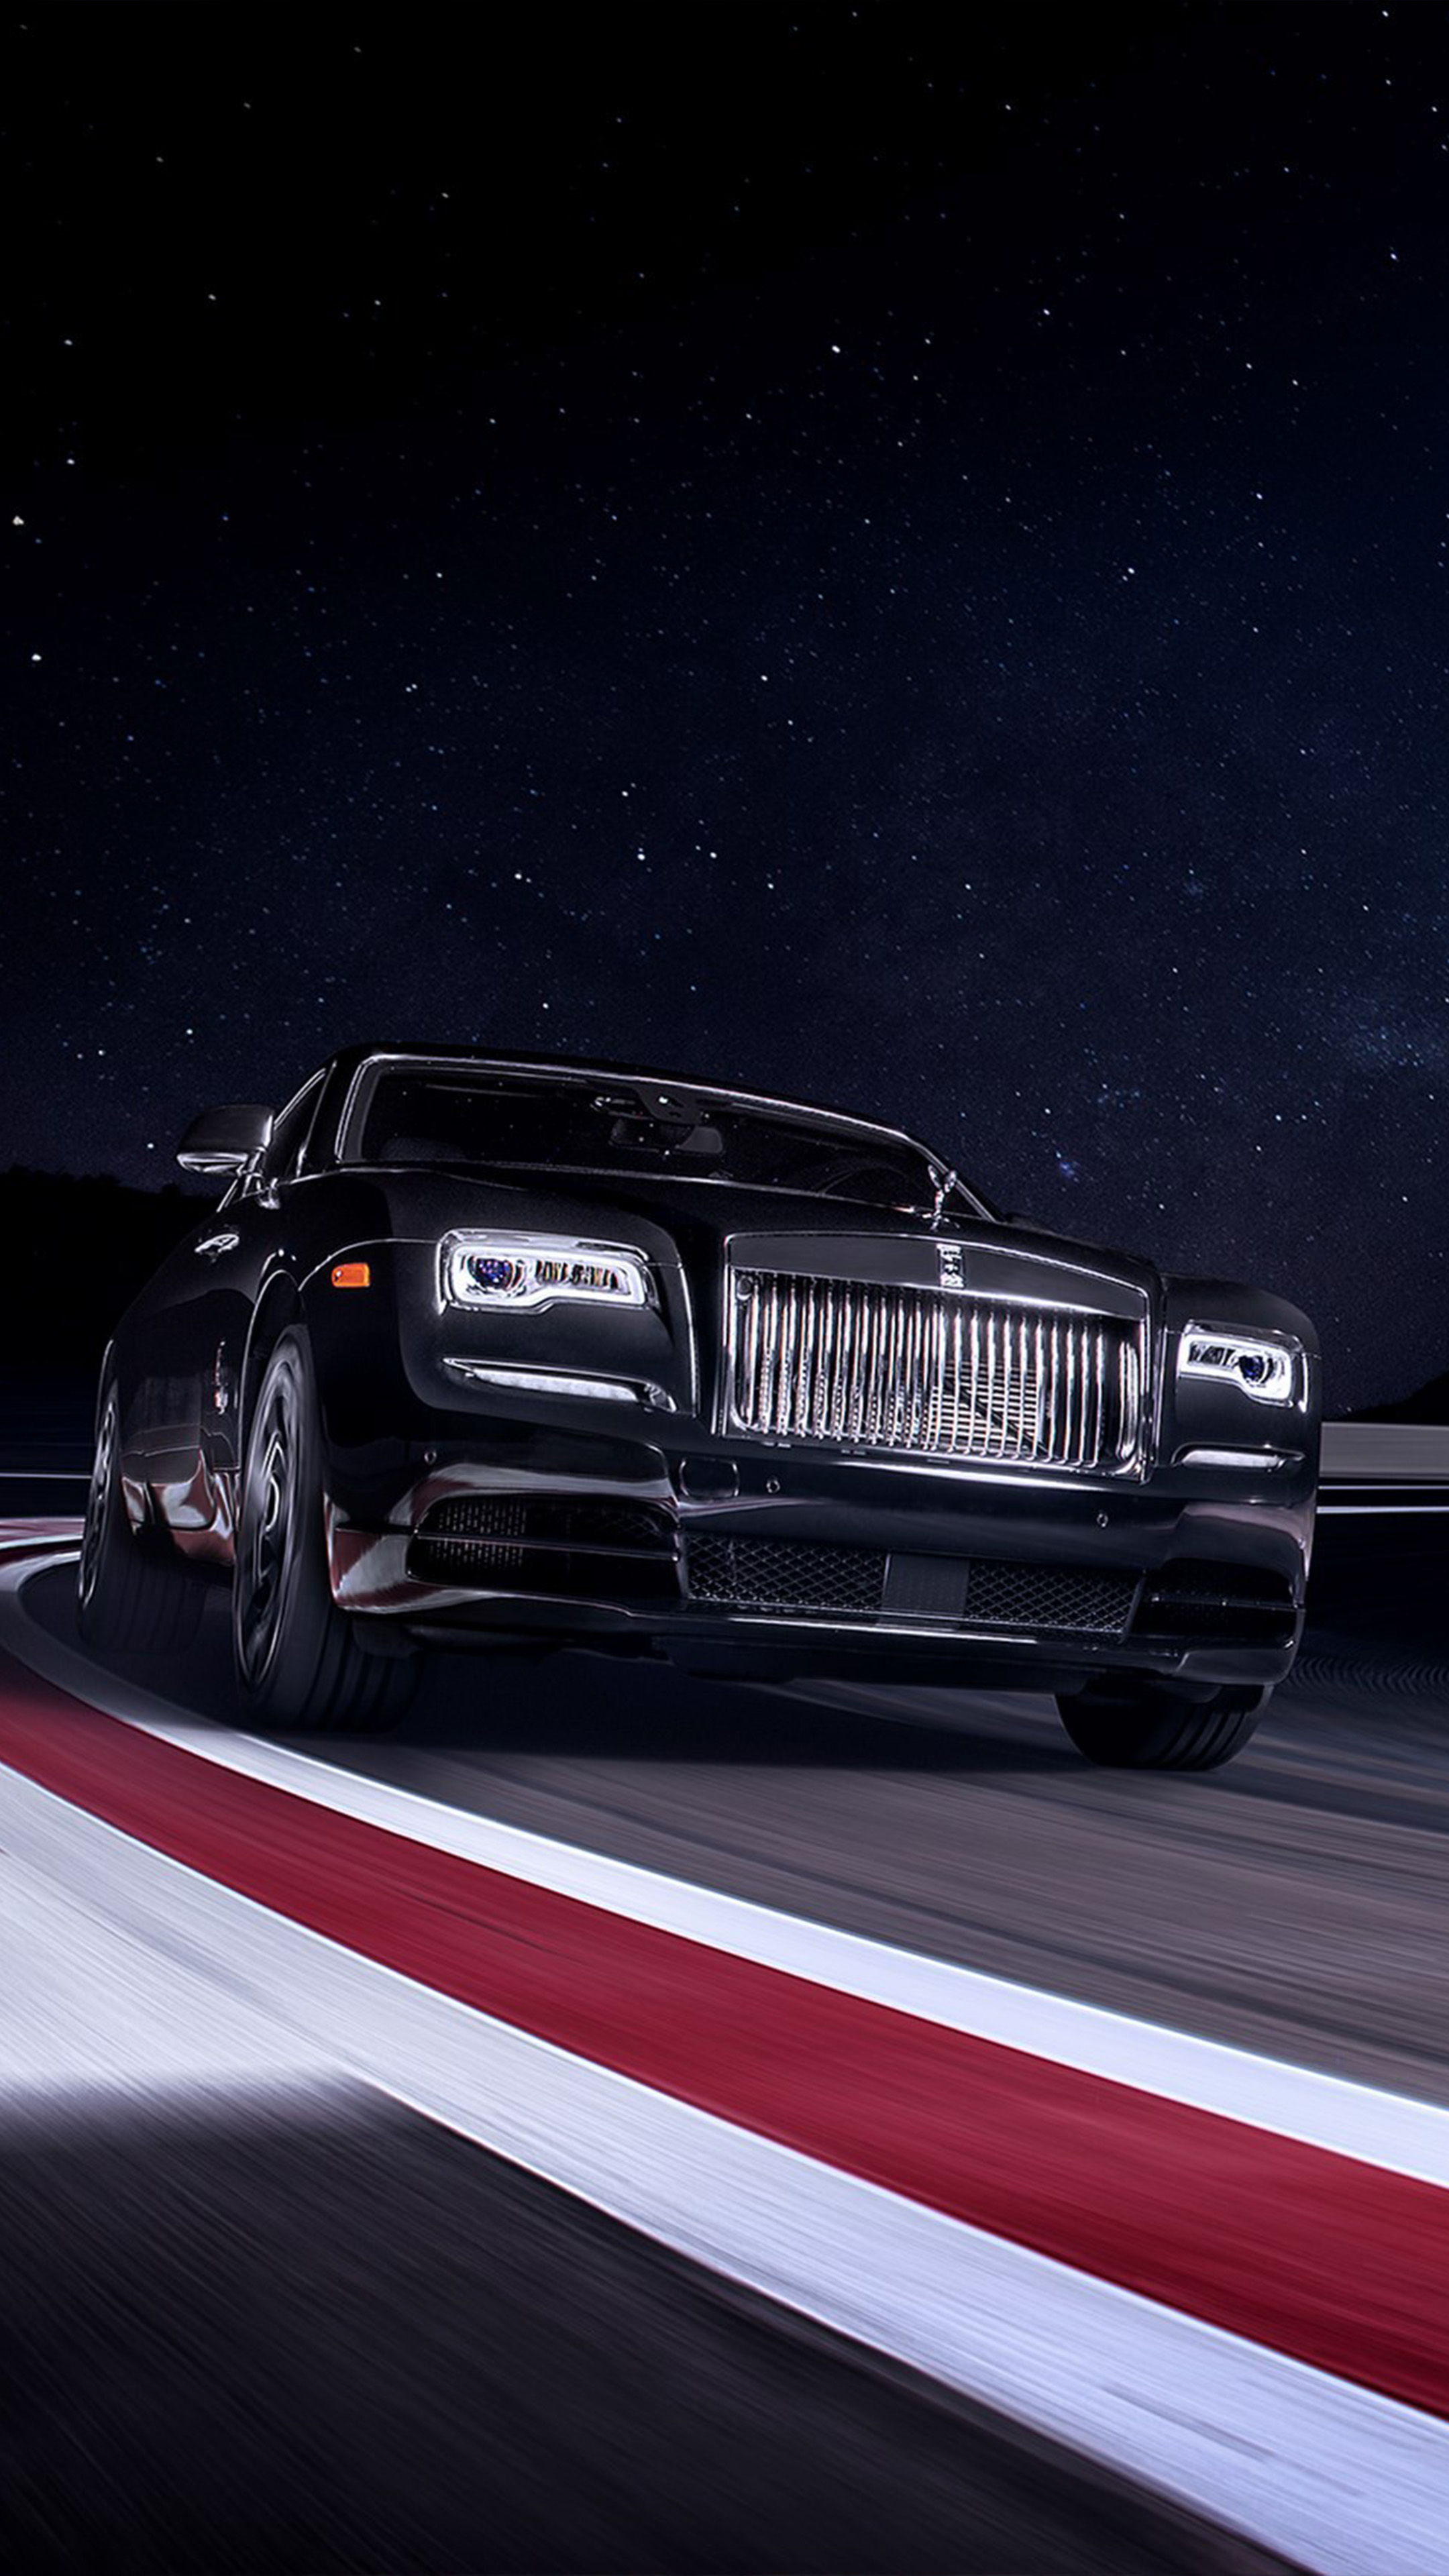 Download Rolls Royce Black Badge Wraith On Race Track Free Pure 4k